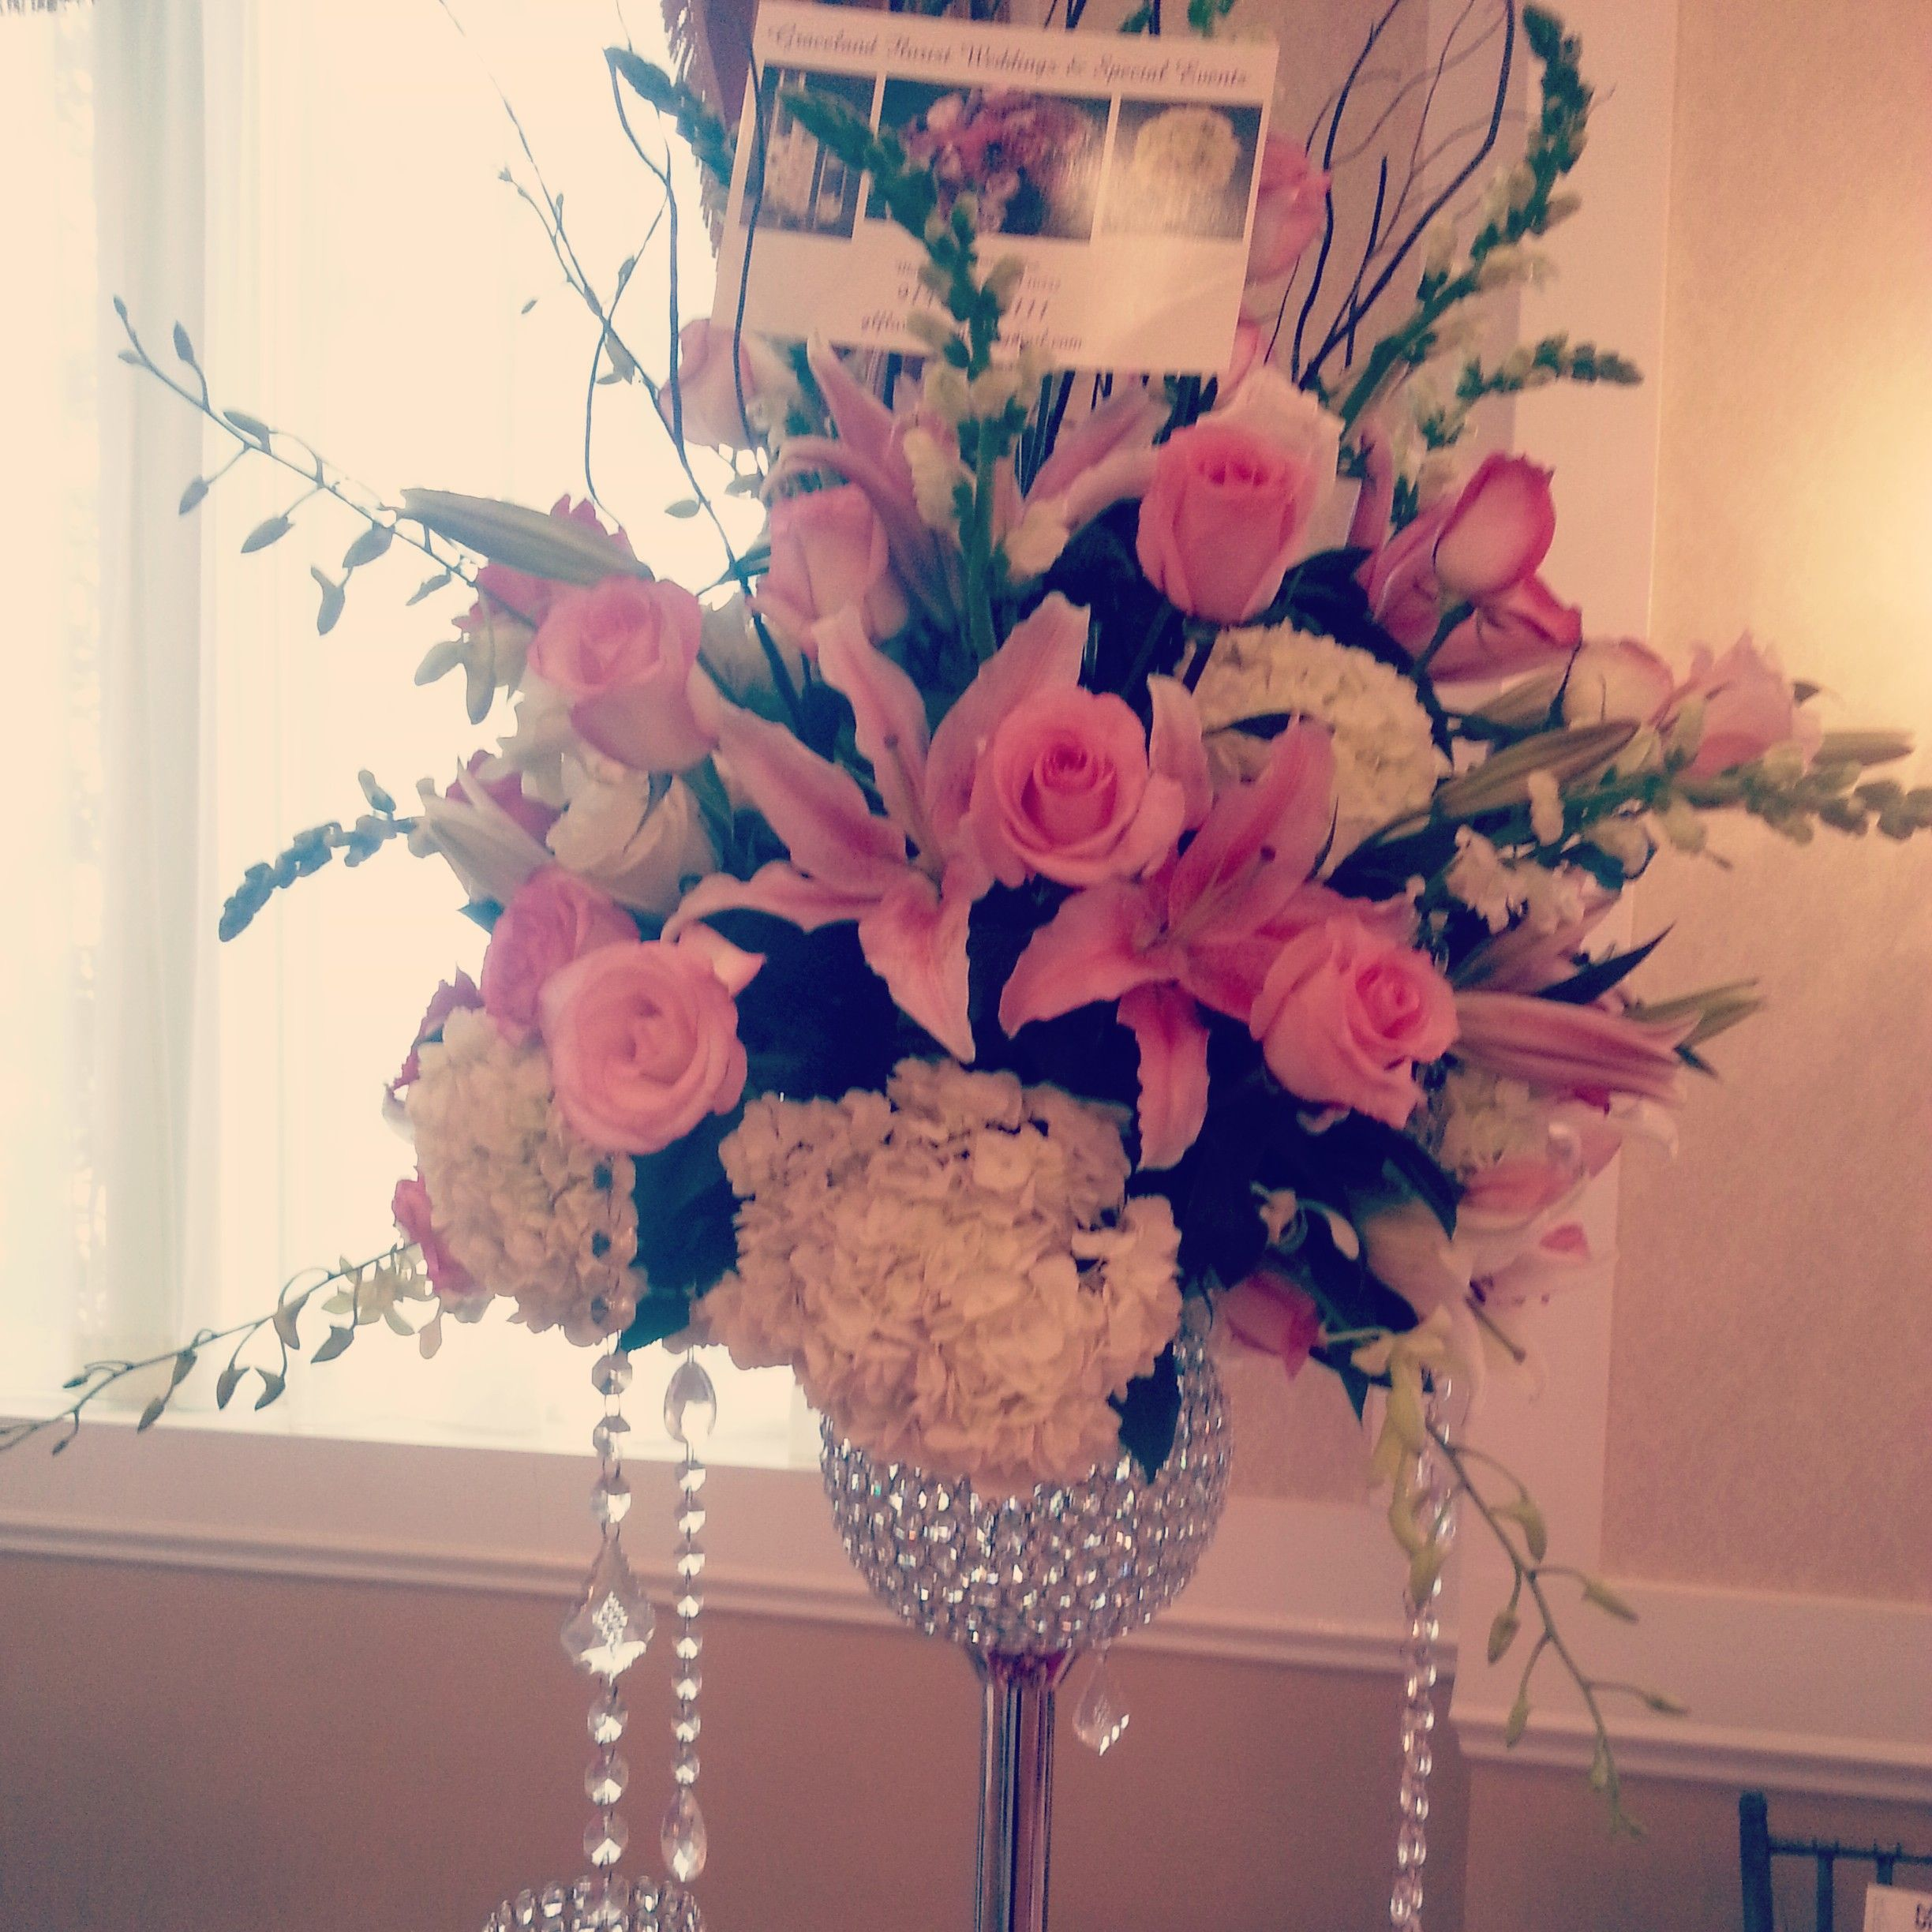 Stargazer lily wedding centerpiece with pink roses, white ...